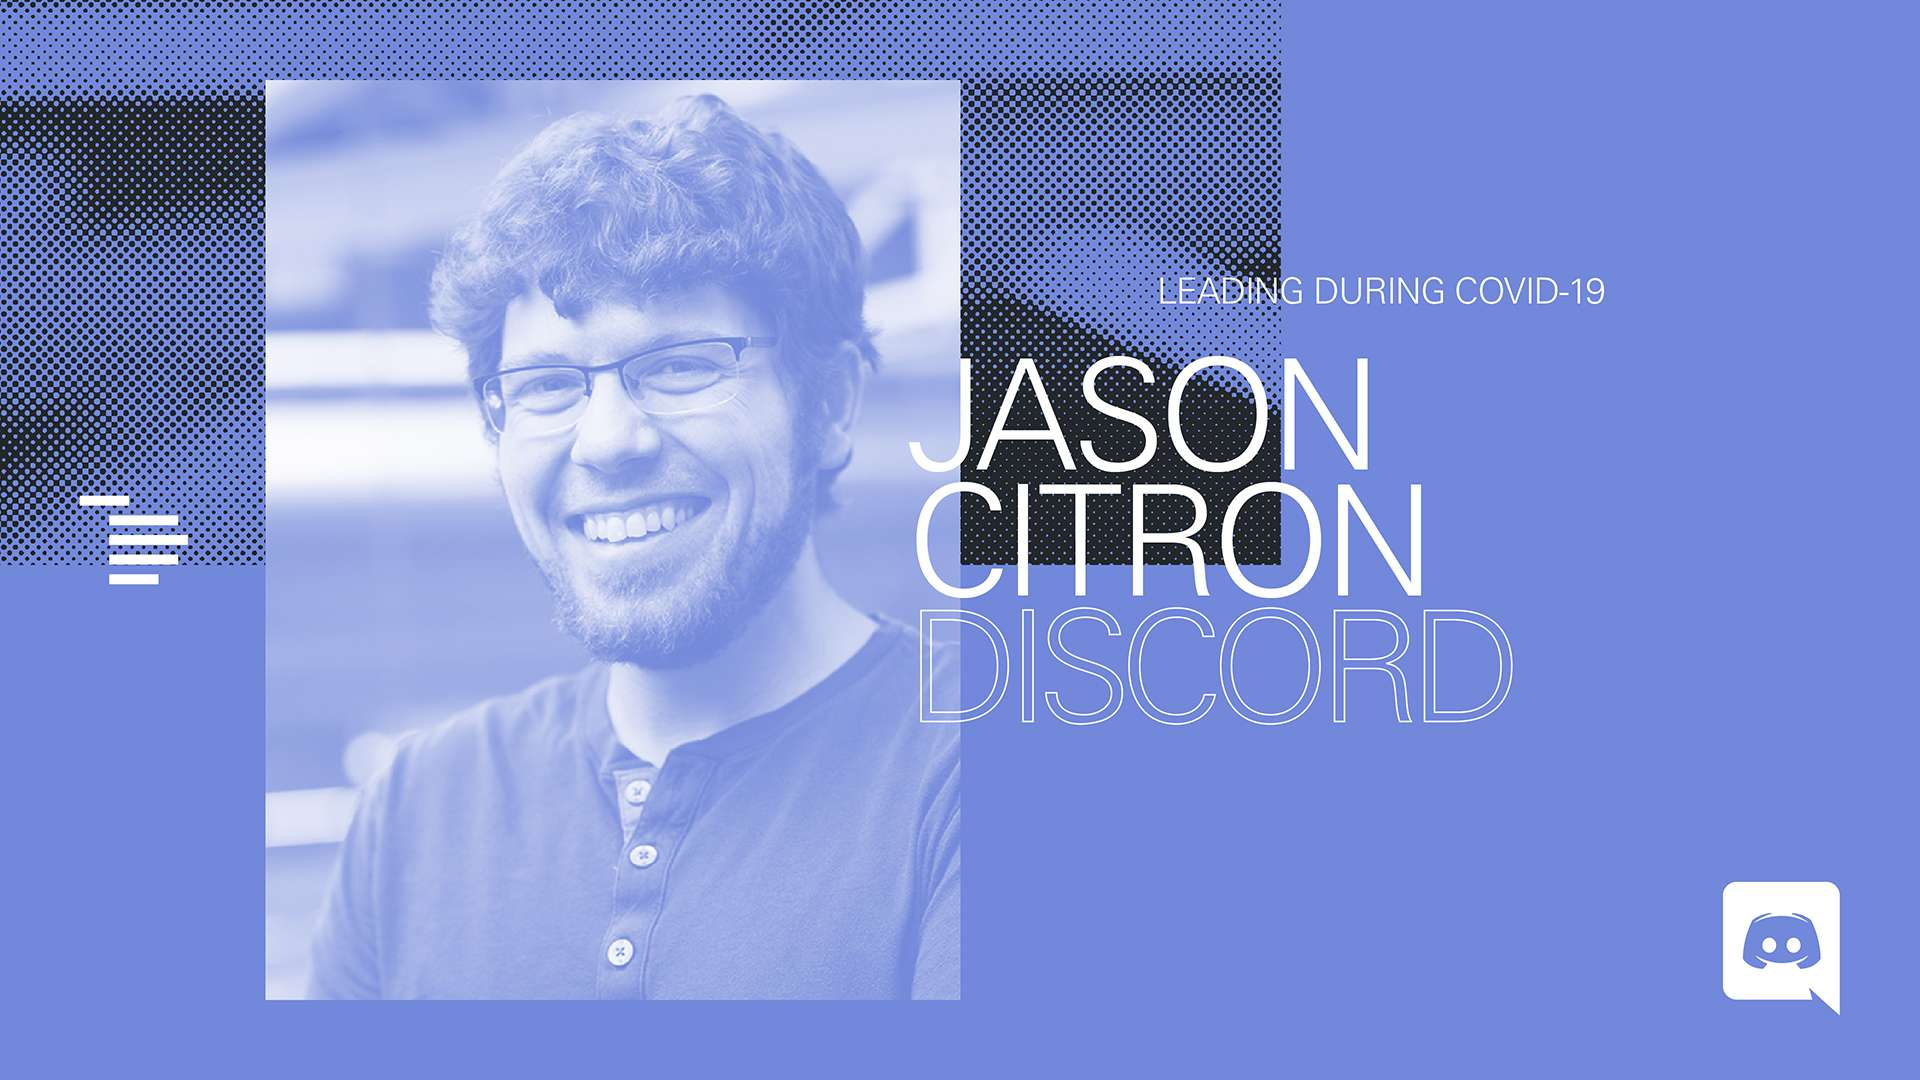 Creating Belonging & Community: Discord's Jason Citron on Leading During  COVID-19 | Index Ventures